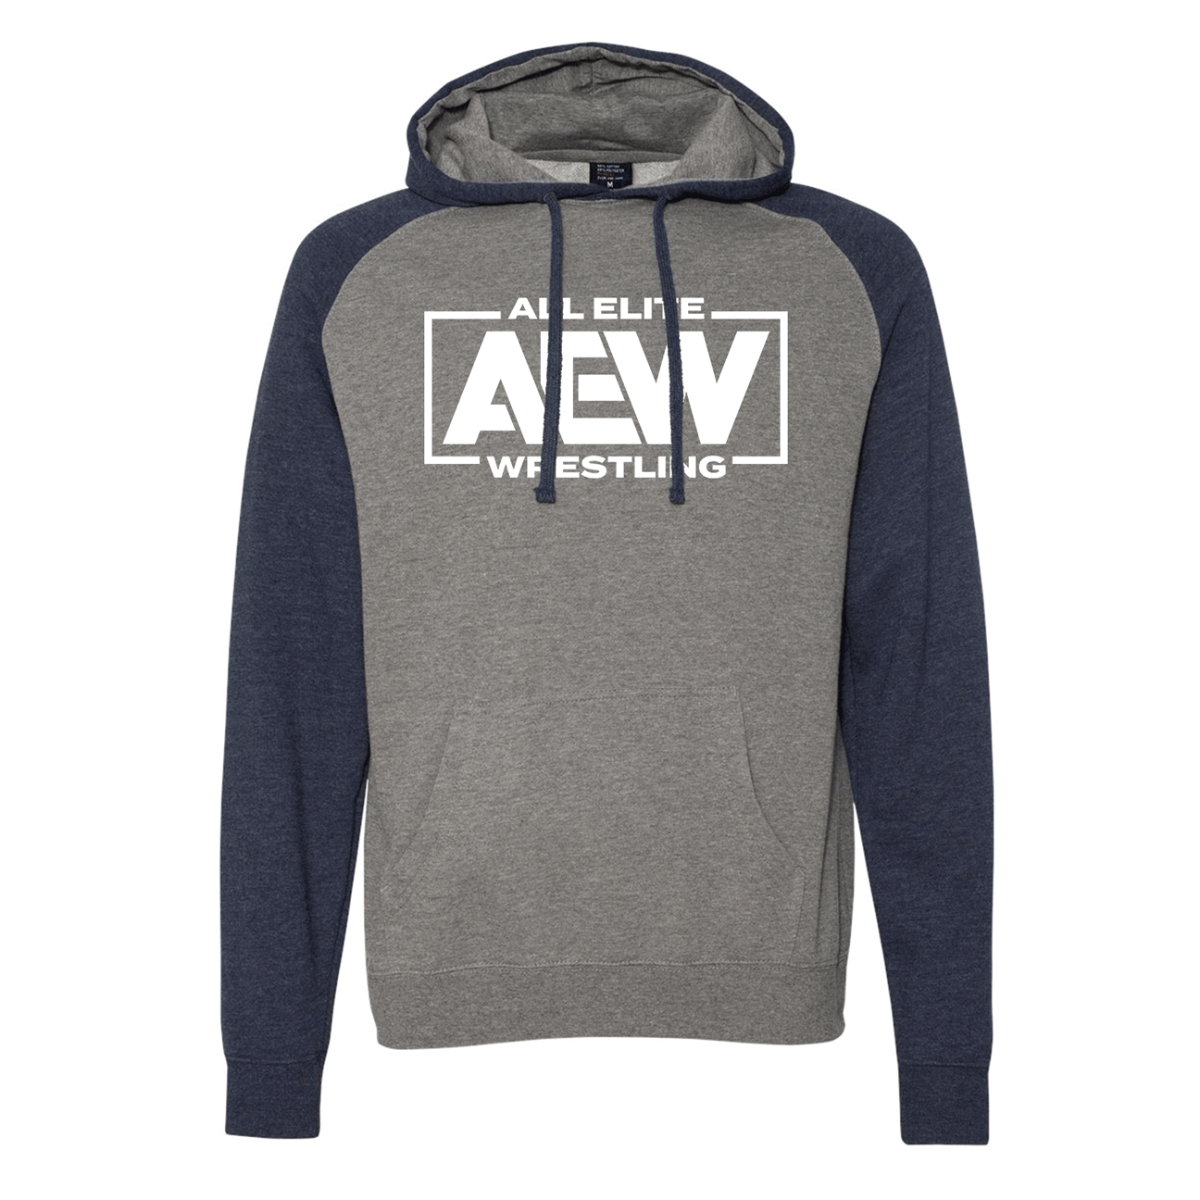 aew1536-1.png